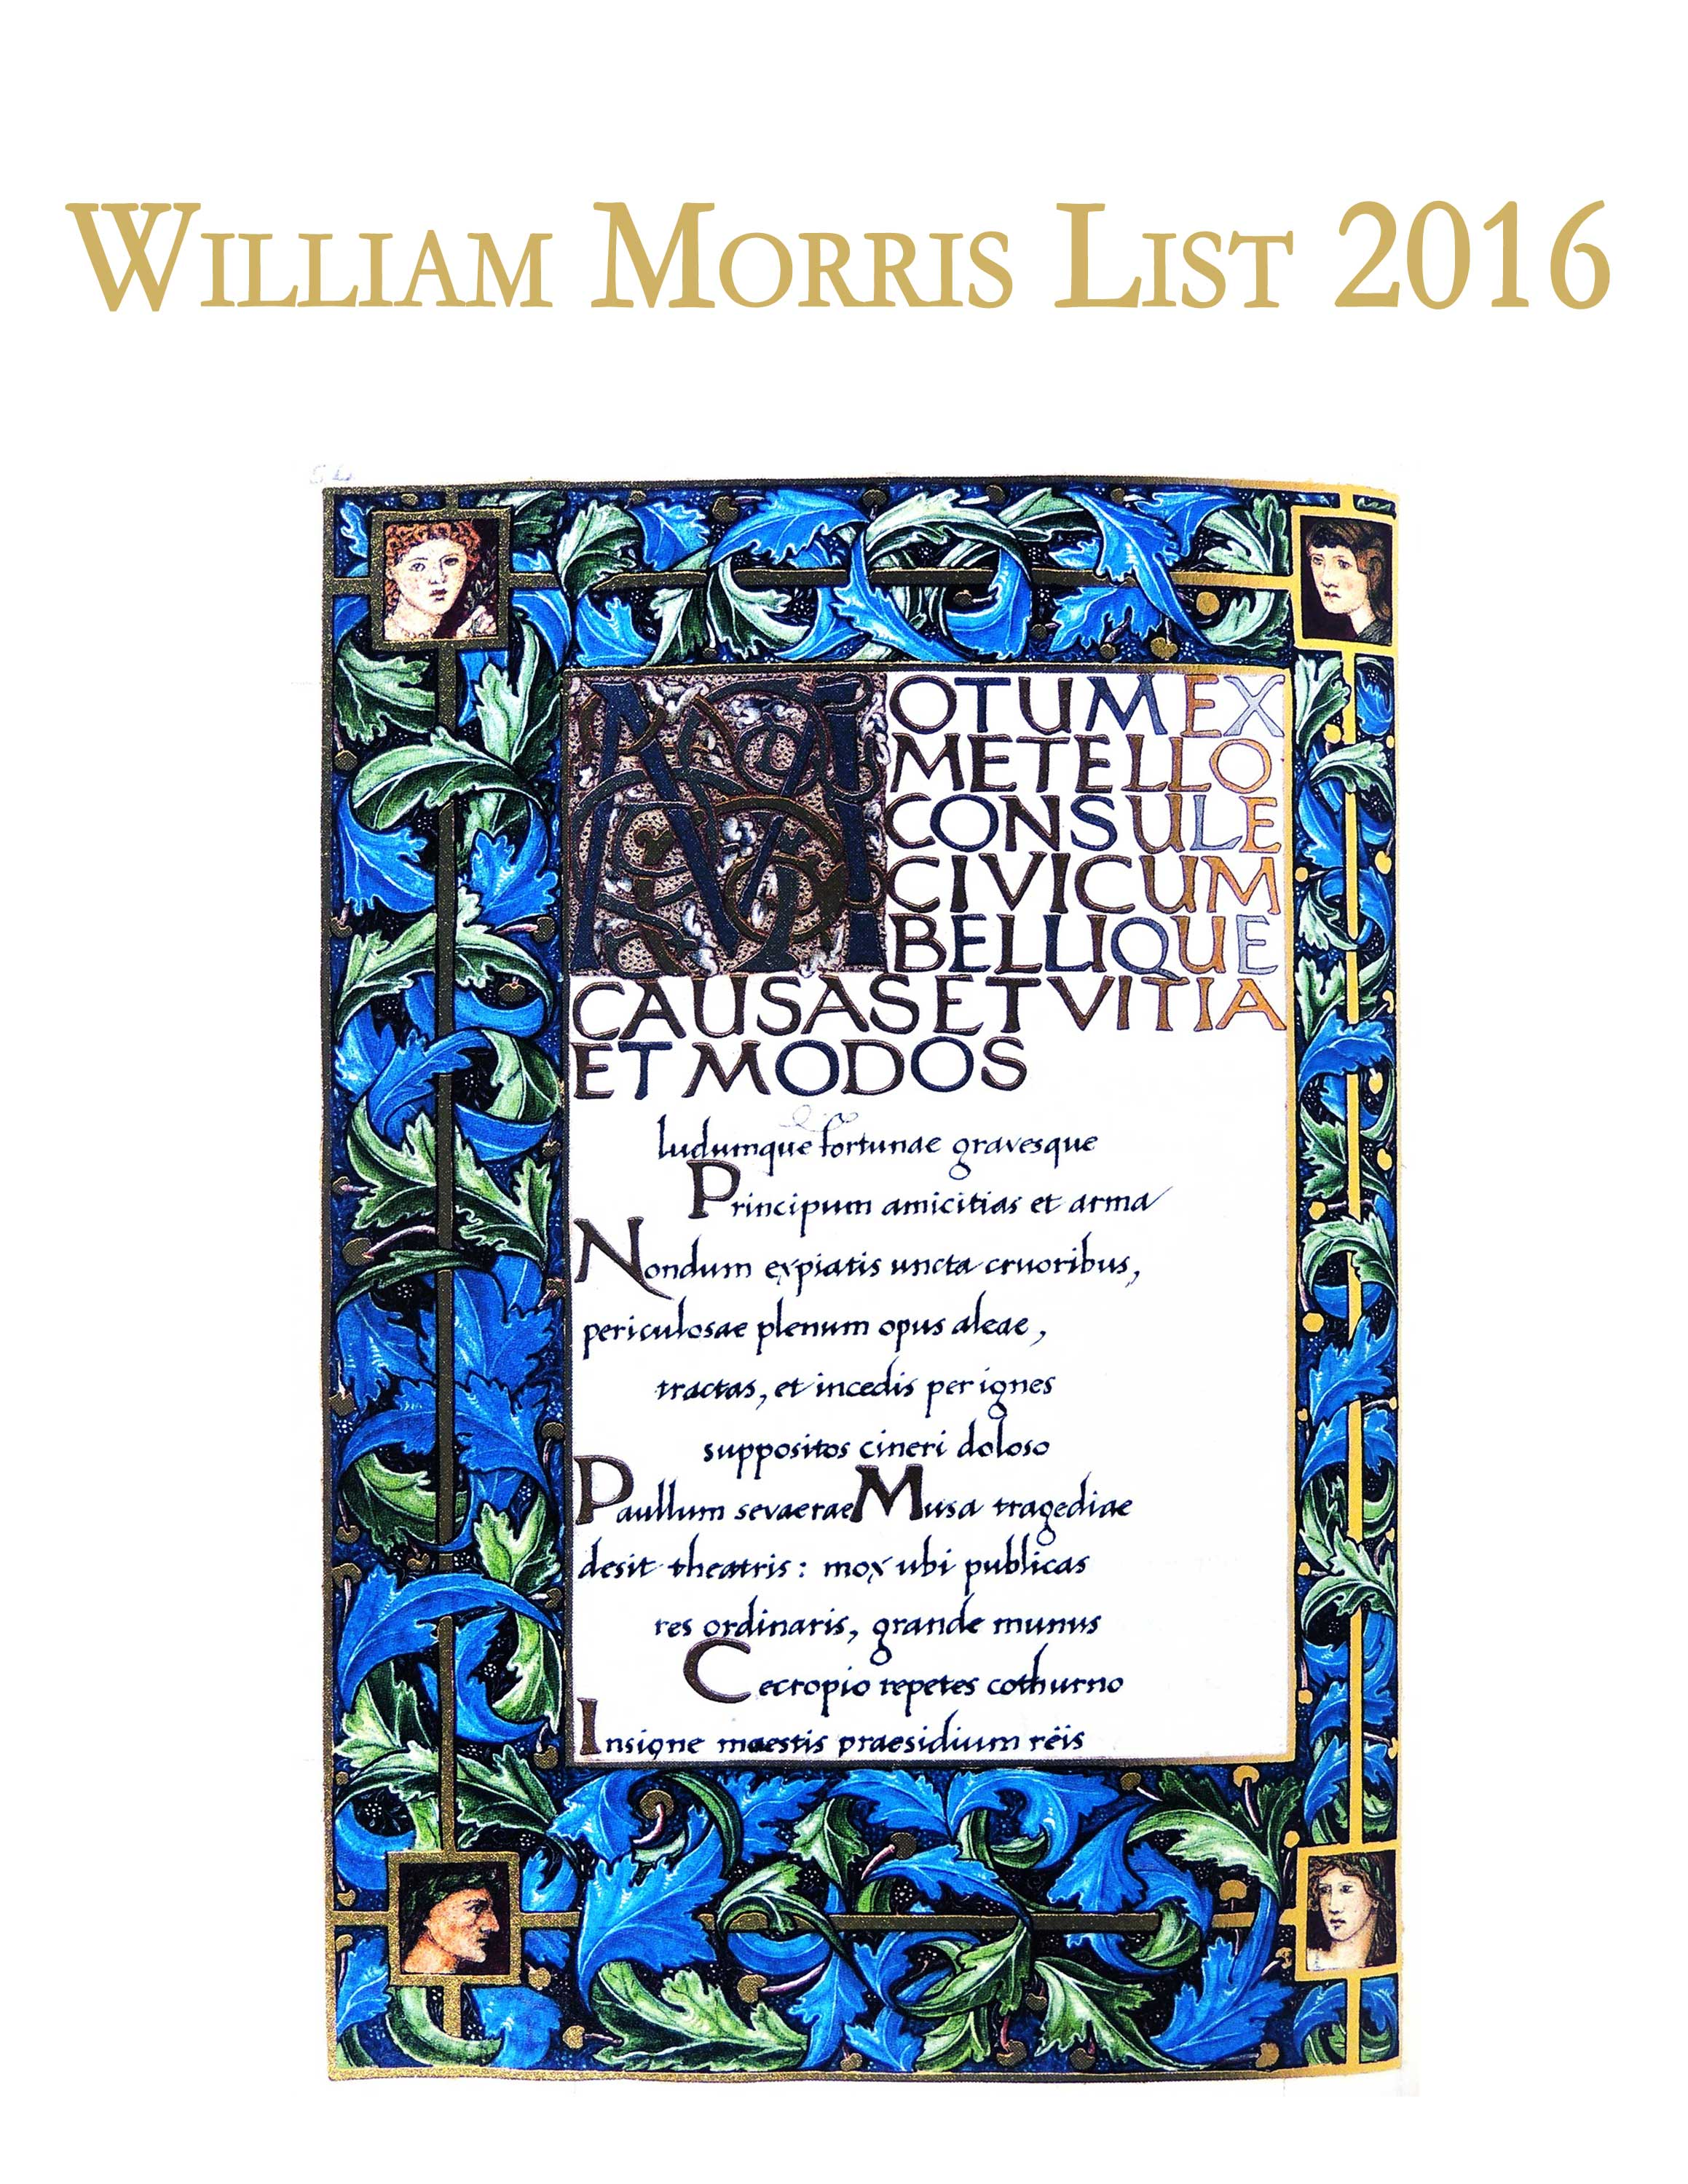 William Morris List 2016